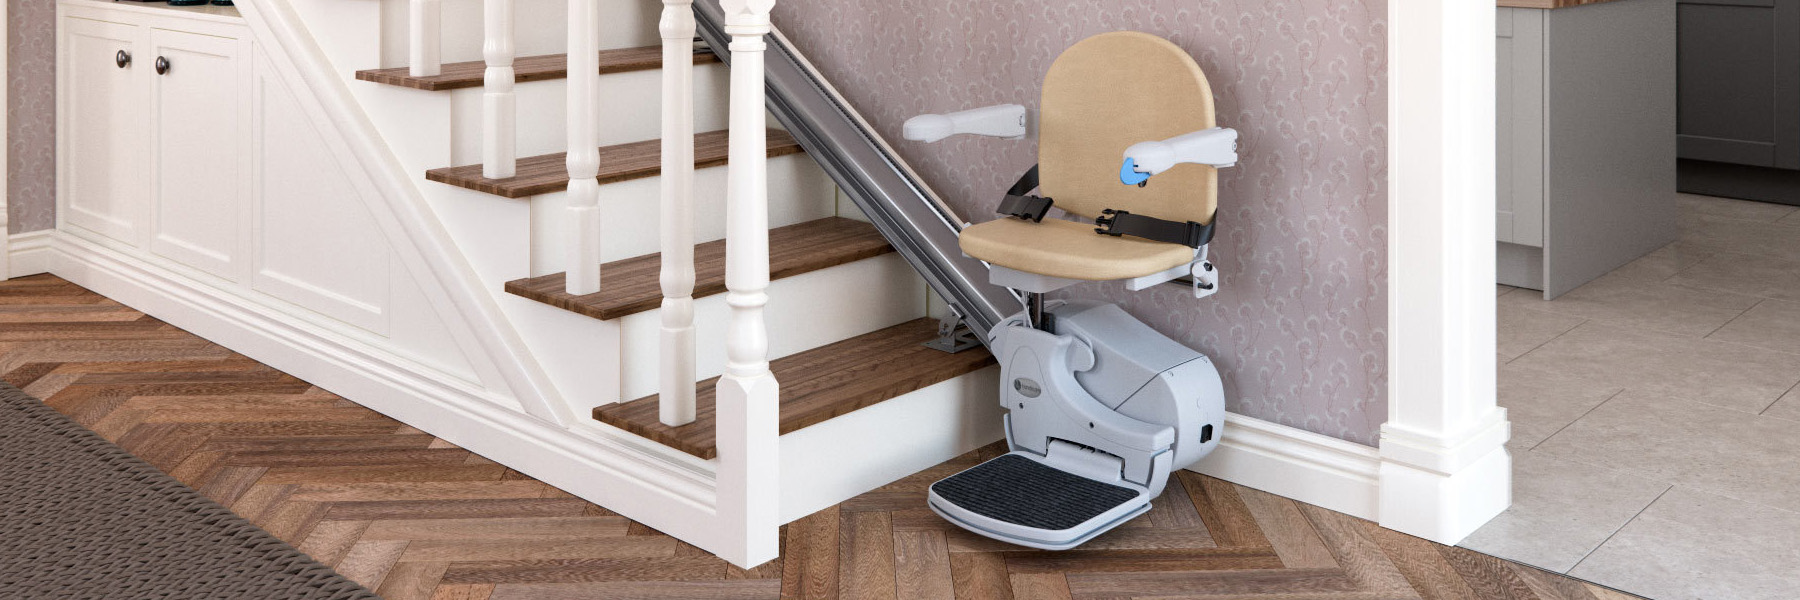 stairlift keeps stopping